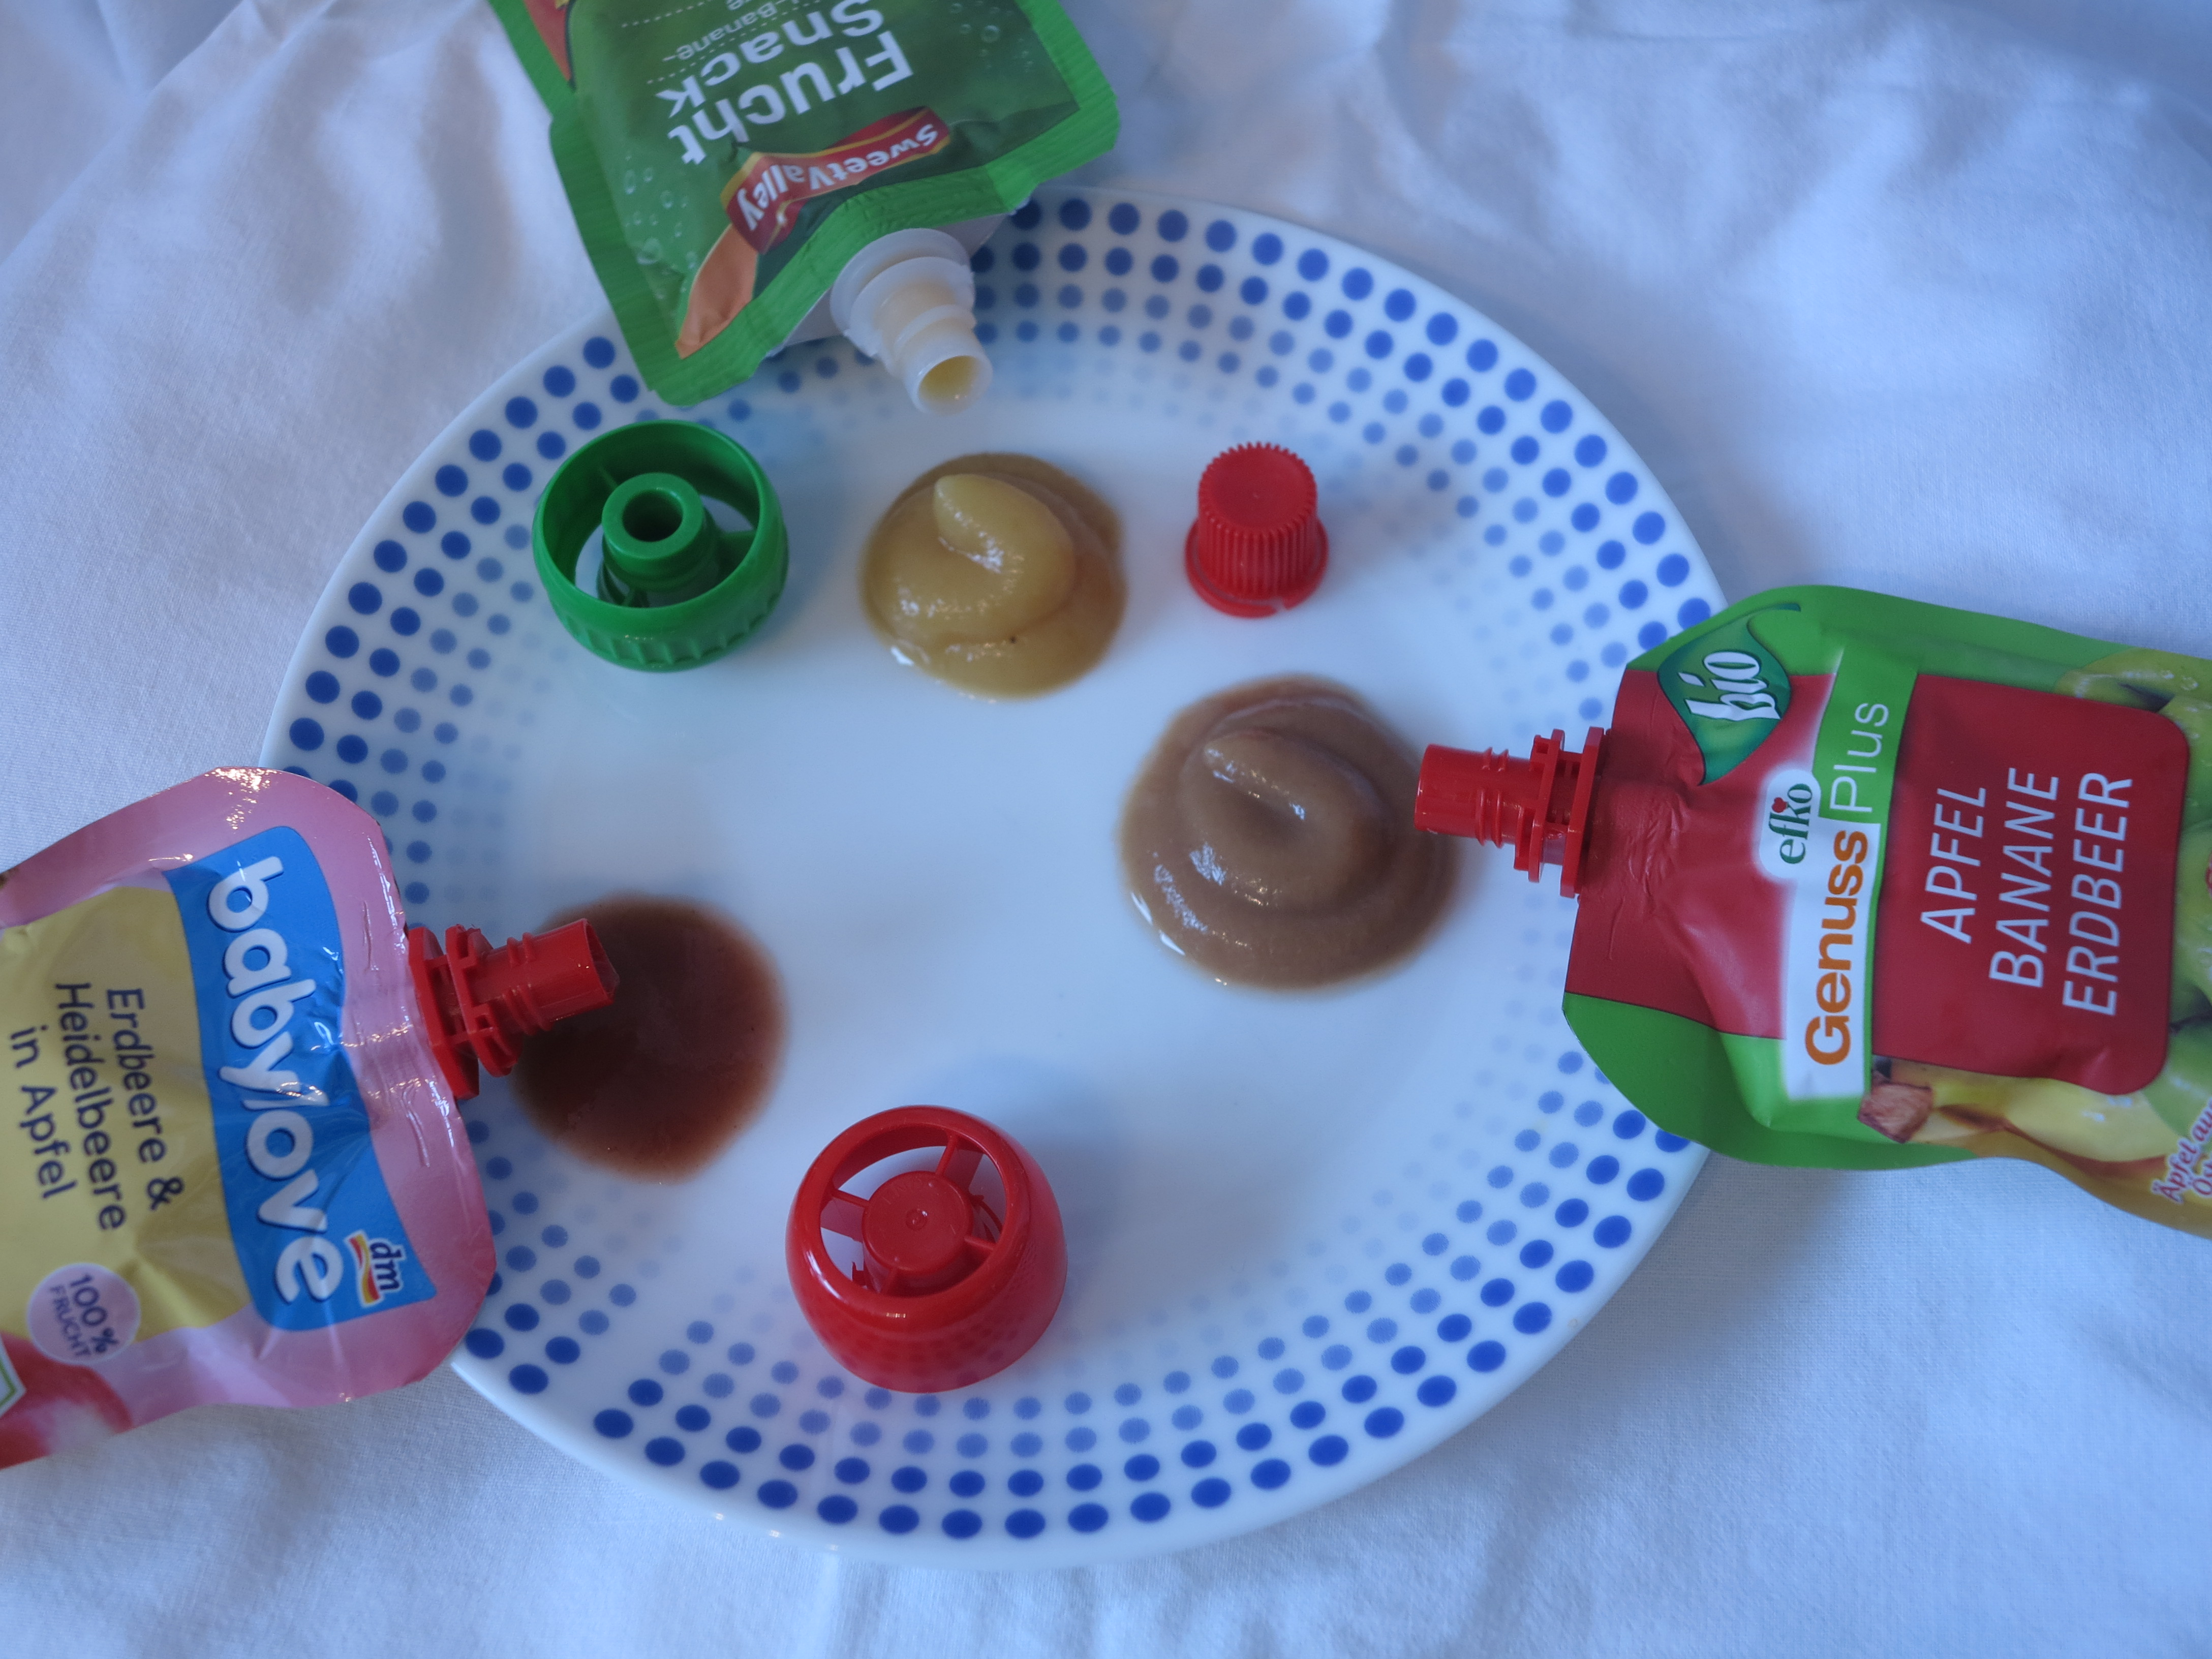 Quetschies Obstmus Efko SweetValley Babylove